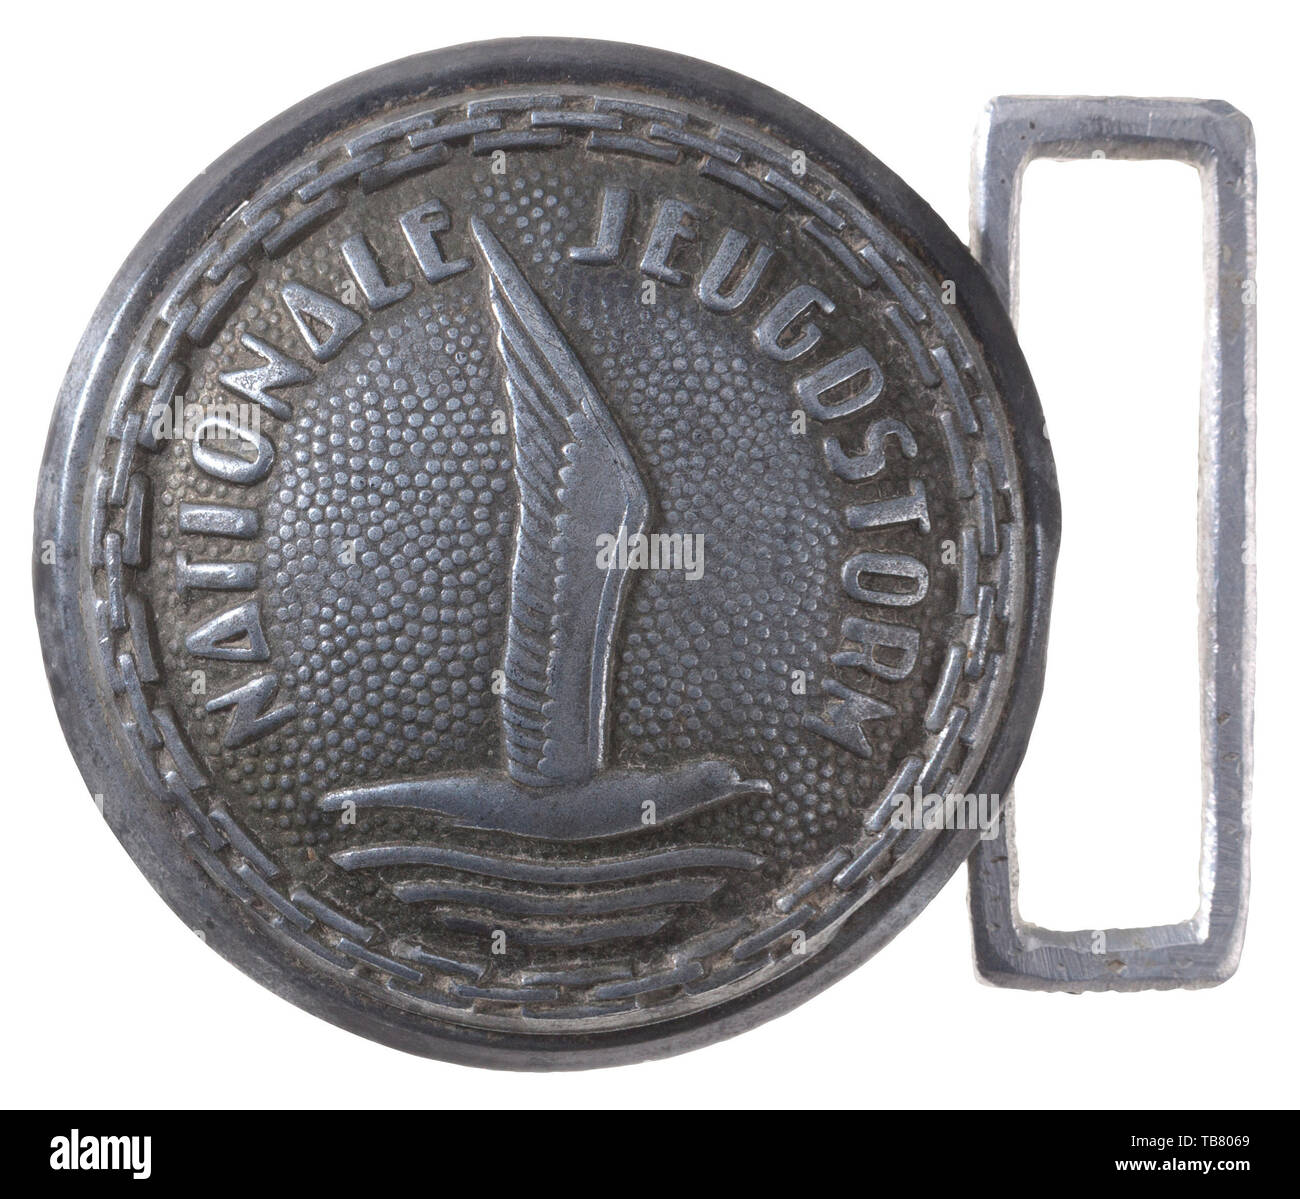 THE JOHN WAHL BELT AND BUCKLE COLLECTION, An unattributed National Youth Storm Officer Belt Buckle, Stamped aluminium, 45 mm diameter., Additional-Rights-Clearance-Info-Not-Available - Stock Image